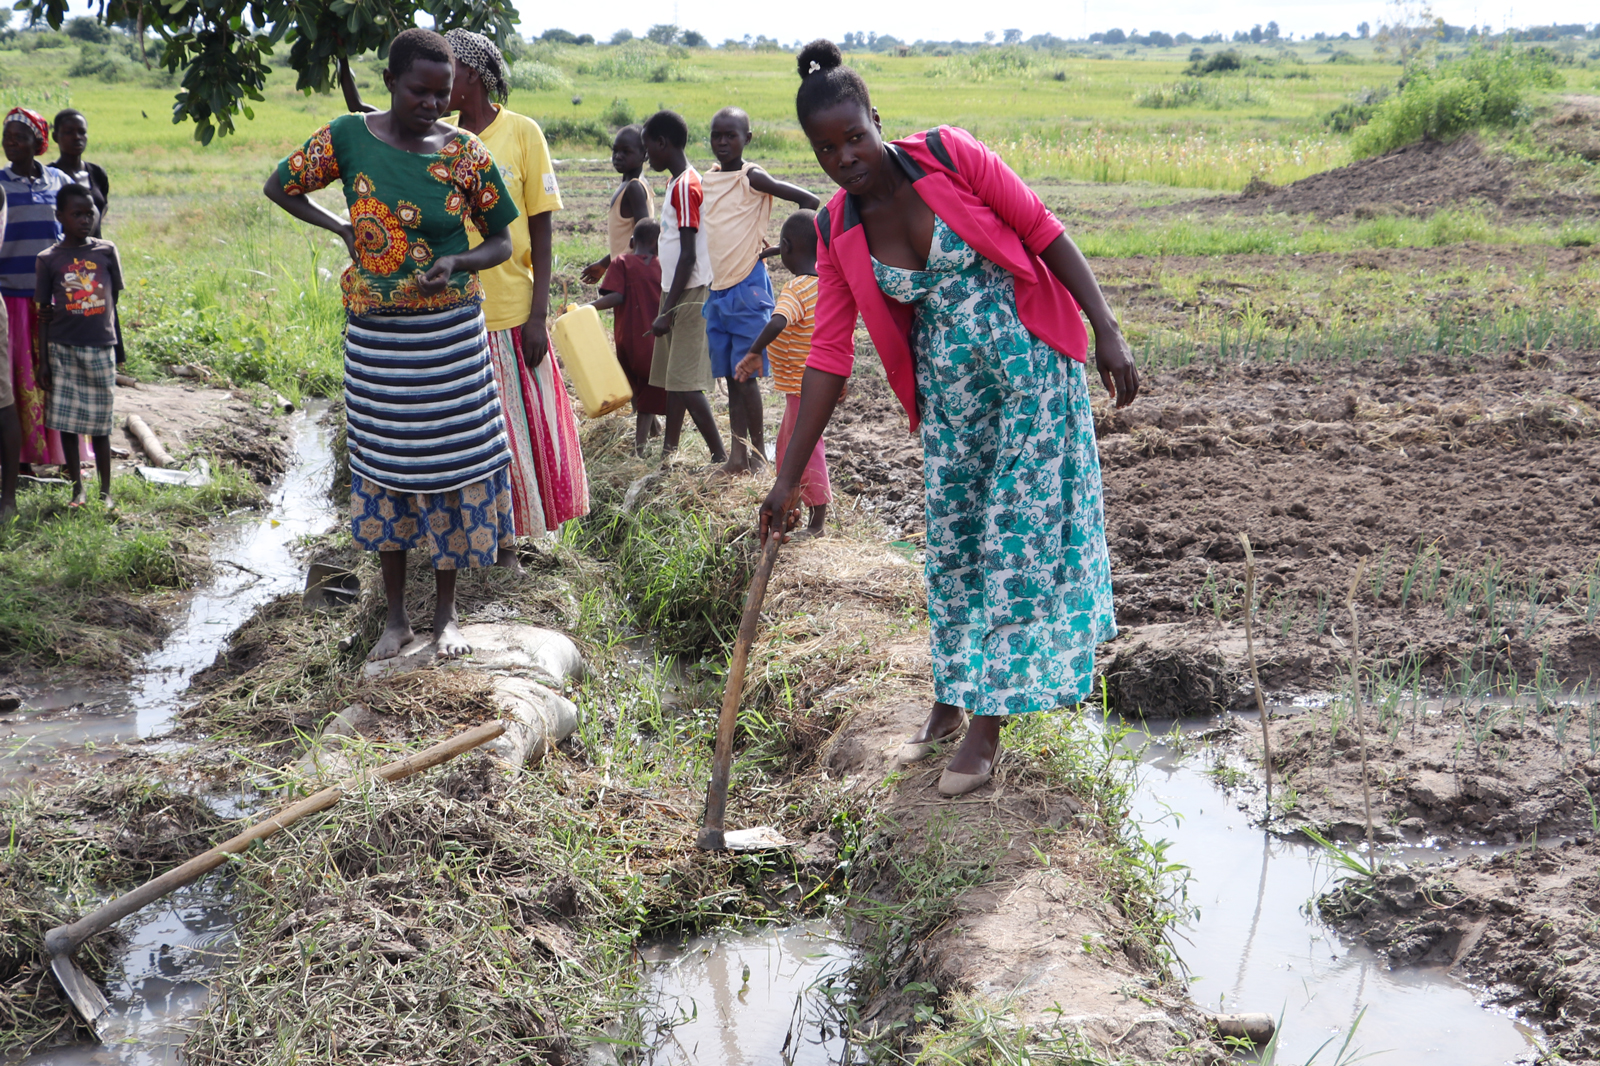 Women farmers standing on the edges of canals in farming field, one holding a hoe to divert water